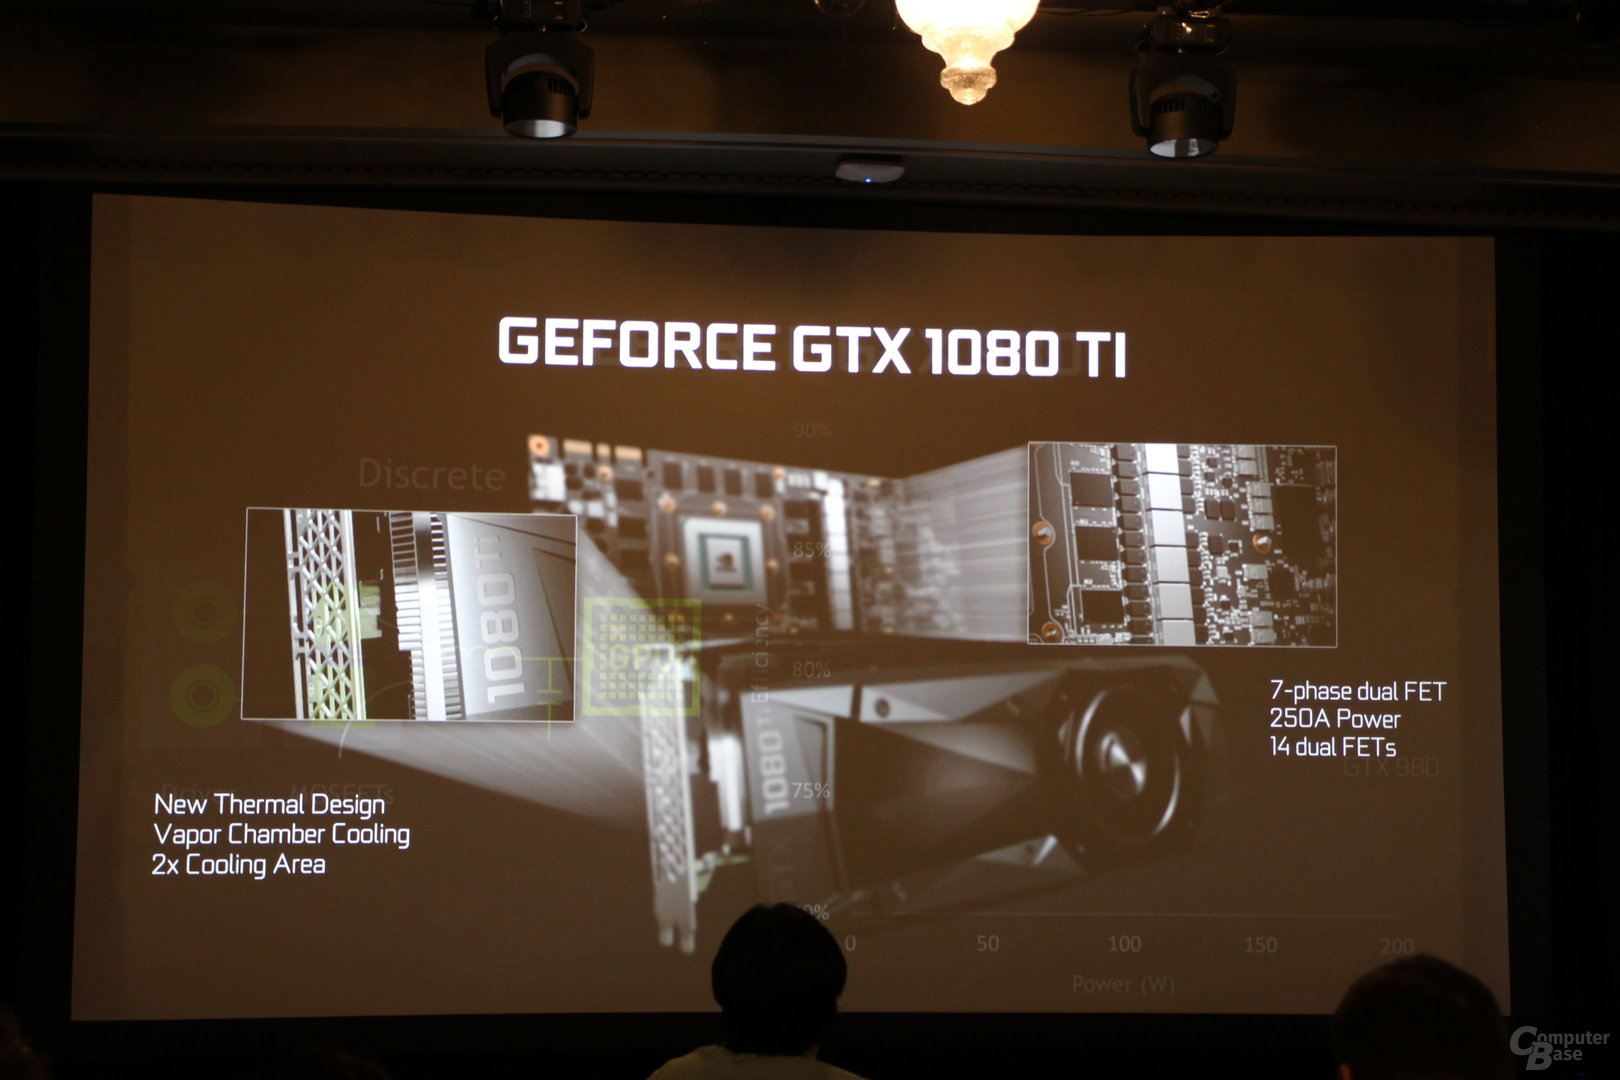 Die Technik der GeForce GTX 1080 Ti im Detail